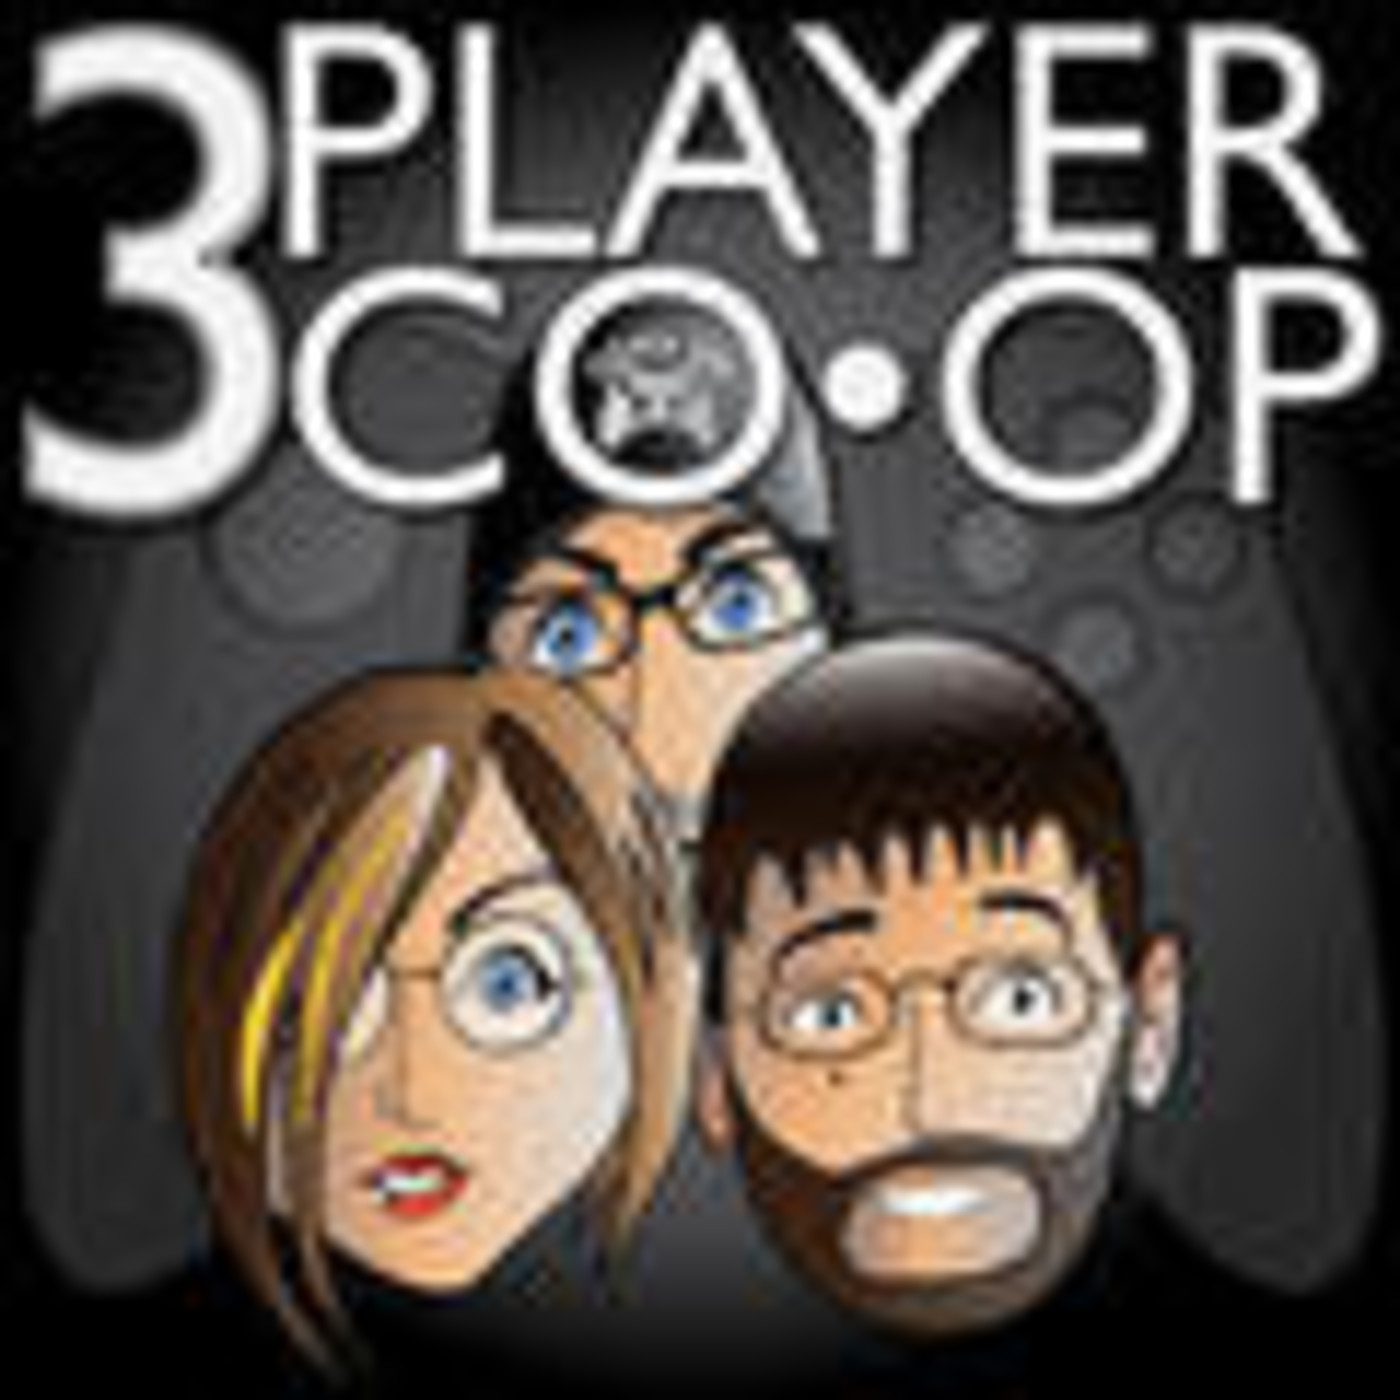 3 Player Co-Op